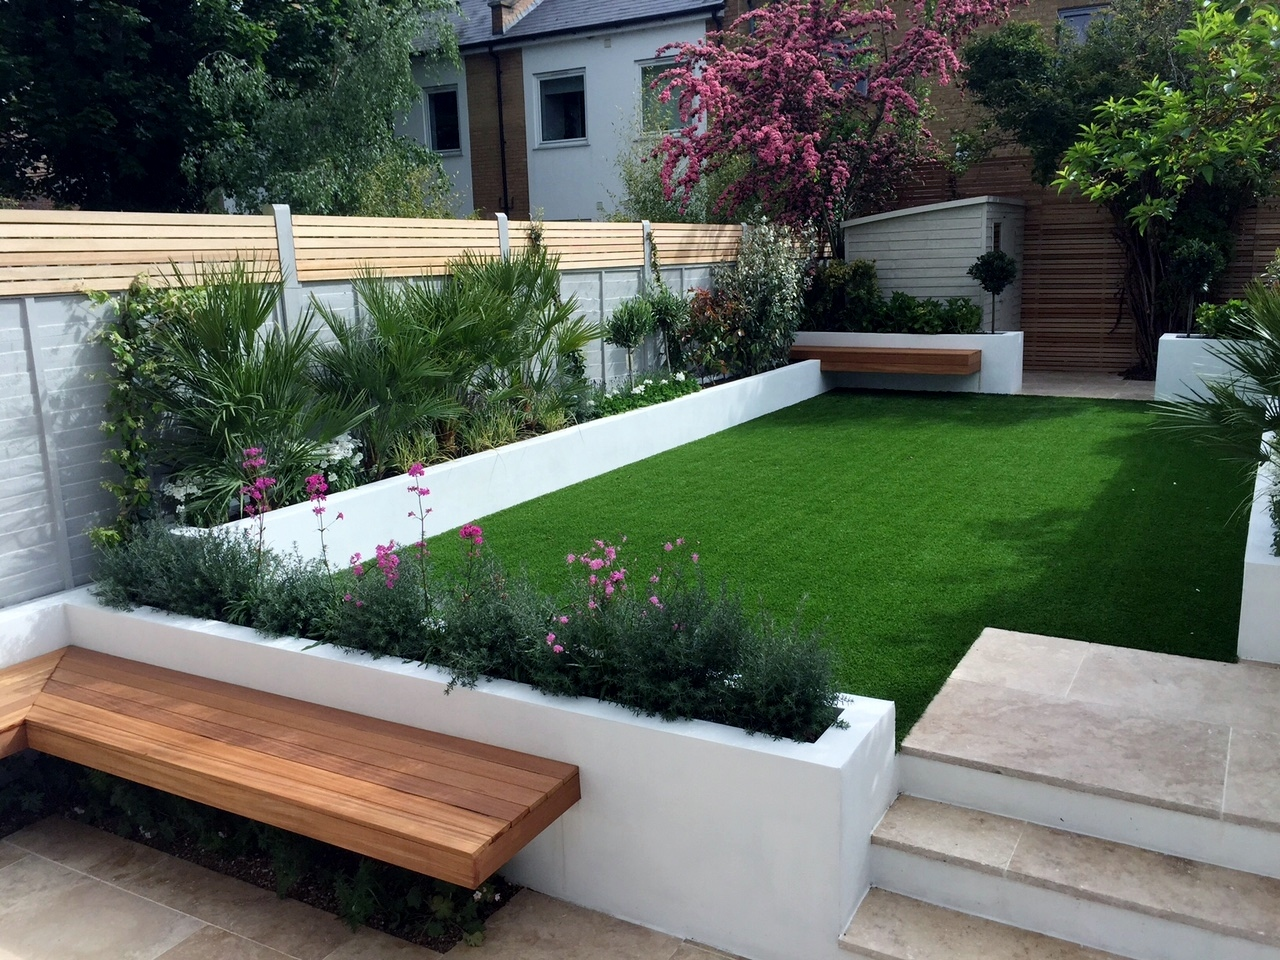 Modern garden design ideas fulham chelsea battersea for Home garden design uk